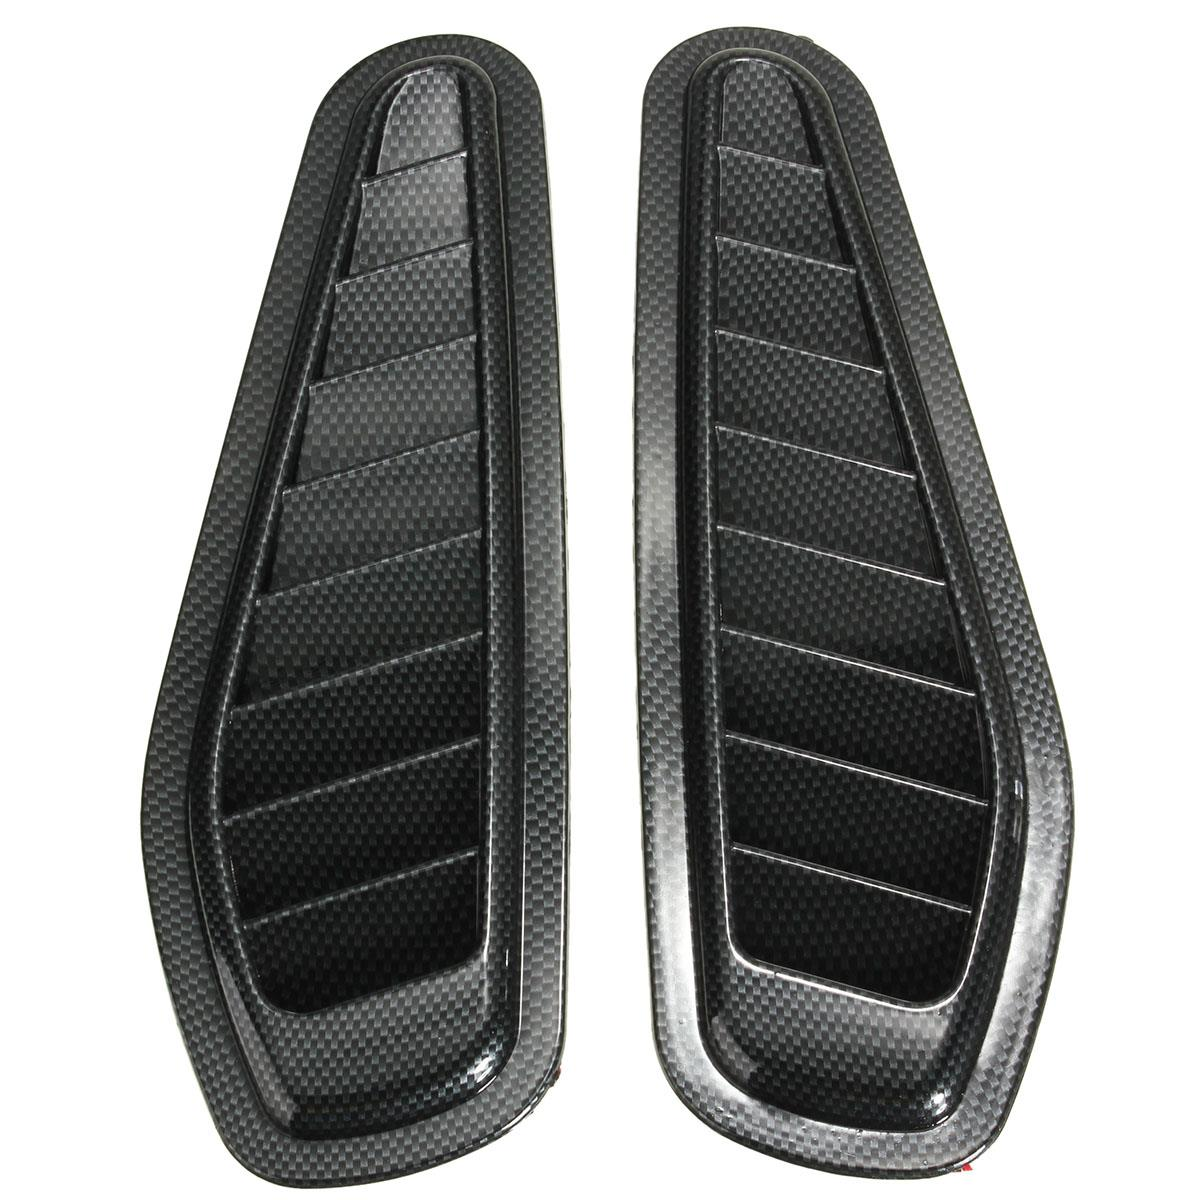 New 2x Car Decorative Air Flow Intake Scoop Turbo Bonnet Vent Cover Hood for Fender 2017 side bonnet cover for mitsubishi l200 triton bonnet hood cover for mitsubishi 2016 for ycsunz